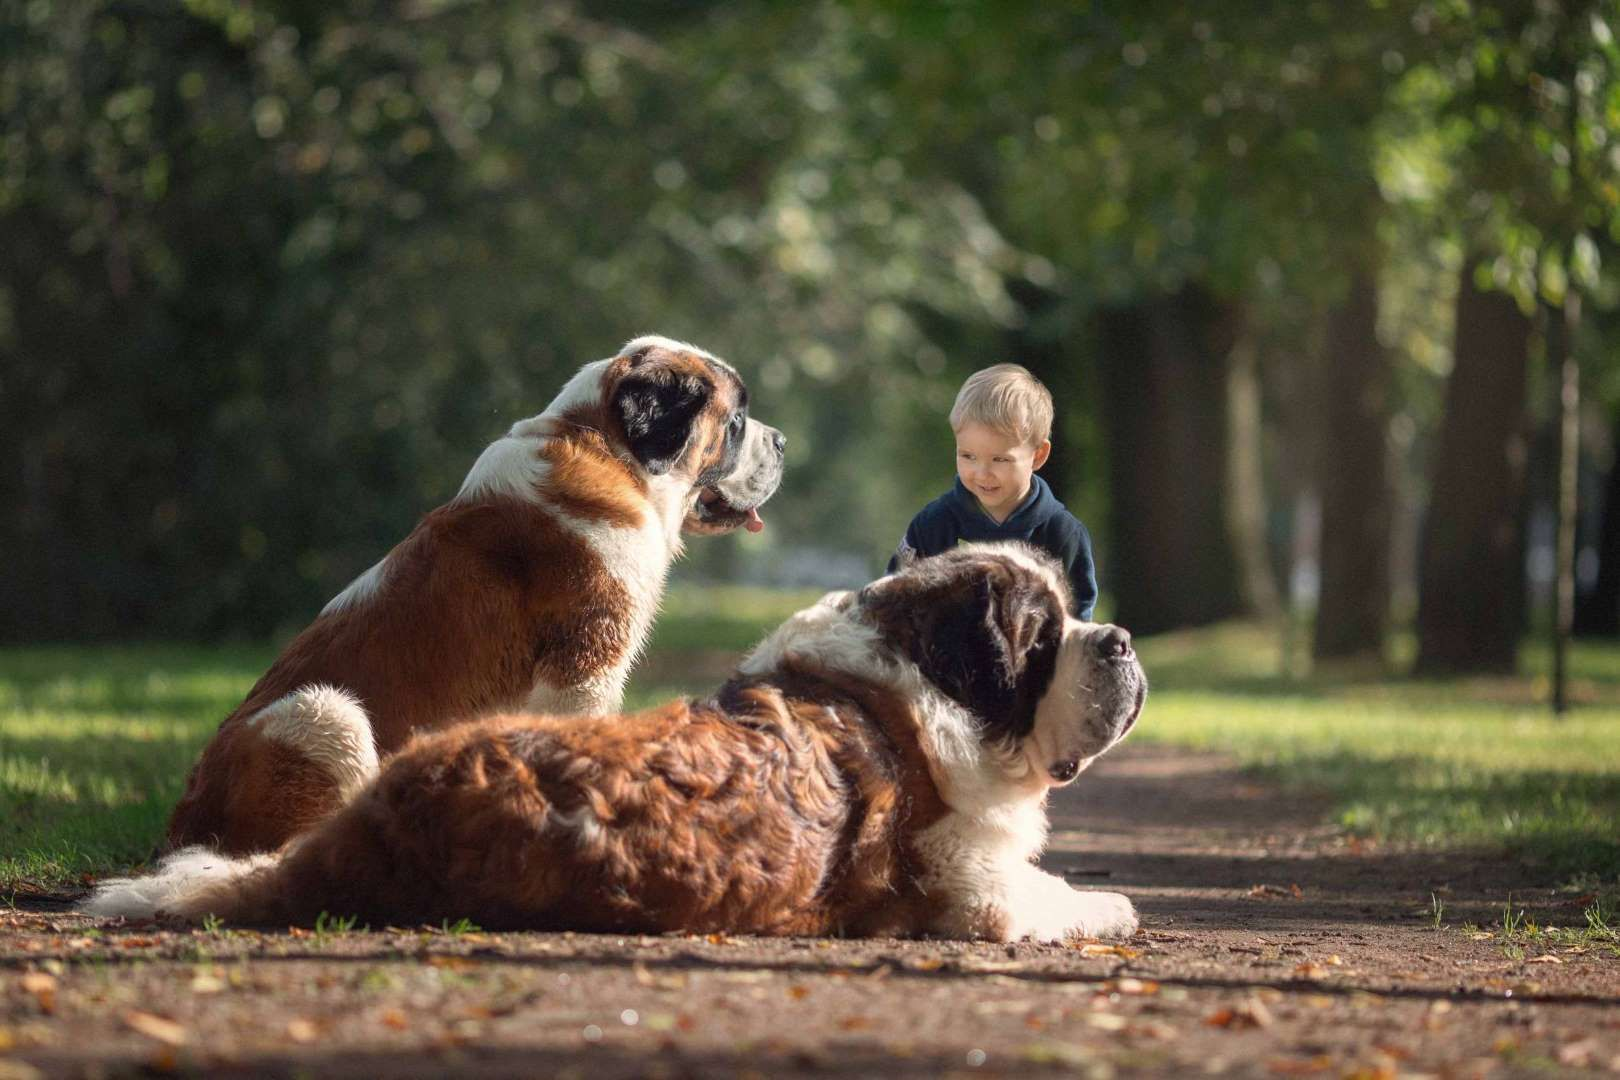 Little Kids And Their Big Dogs Andy Seliverstoff My O My Pics - Tiny children and their huge dogs photographed in adorable portraits by andy seliverstoff